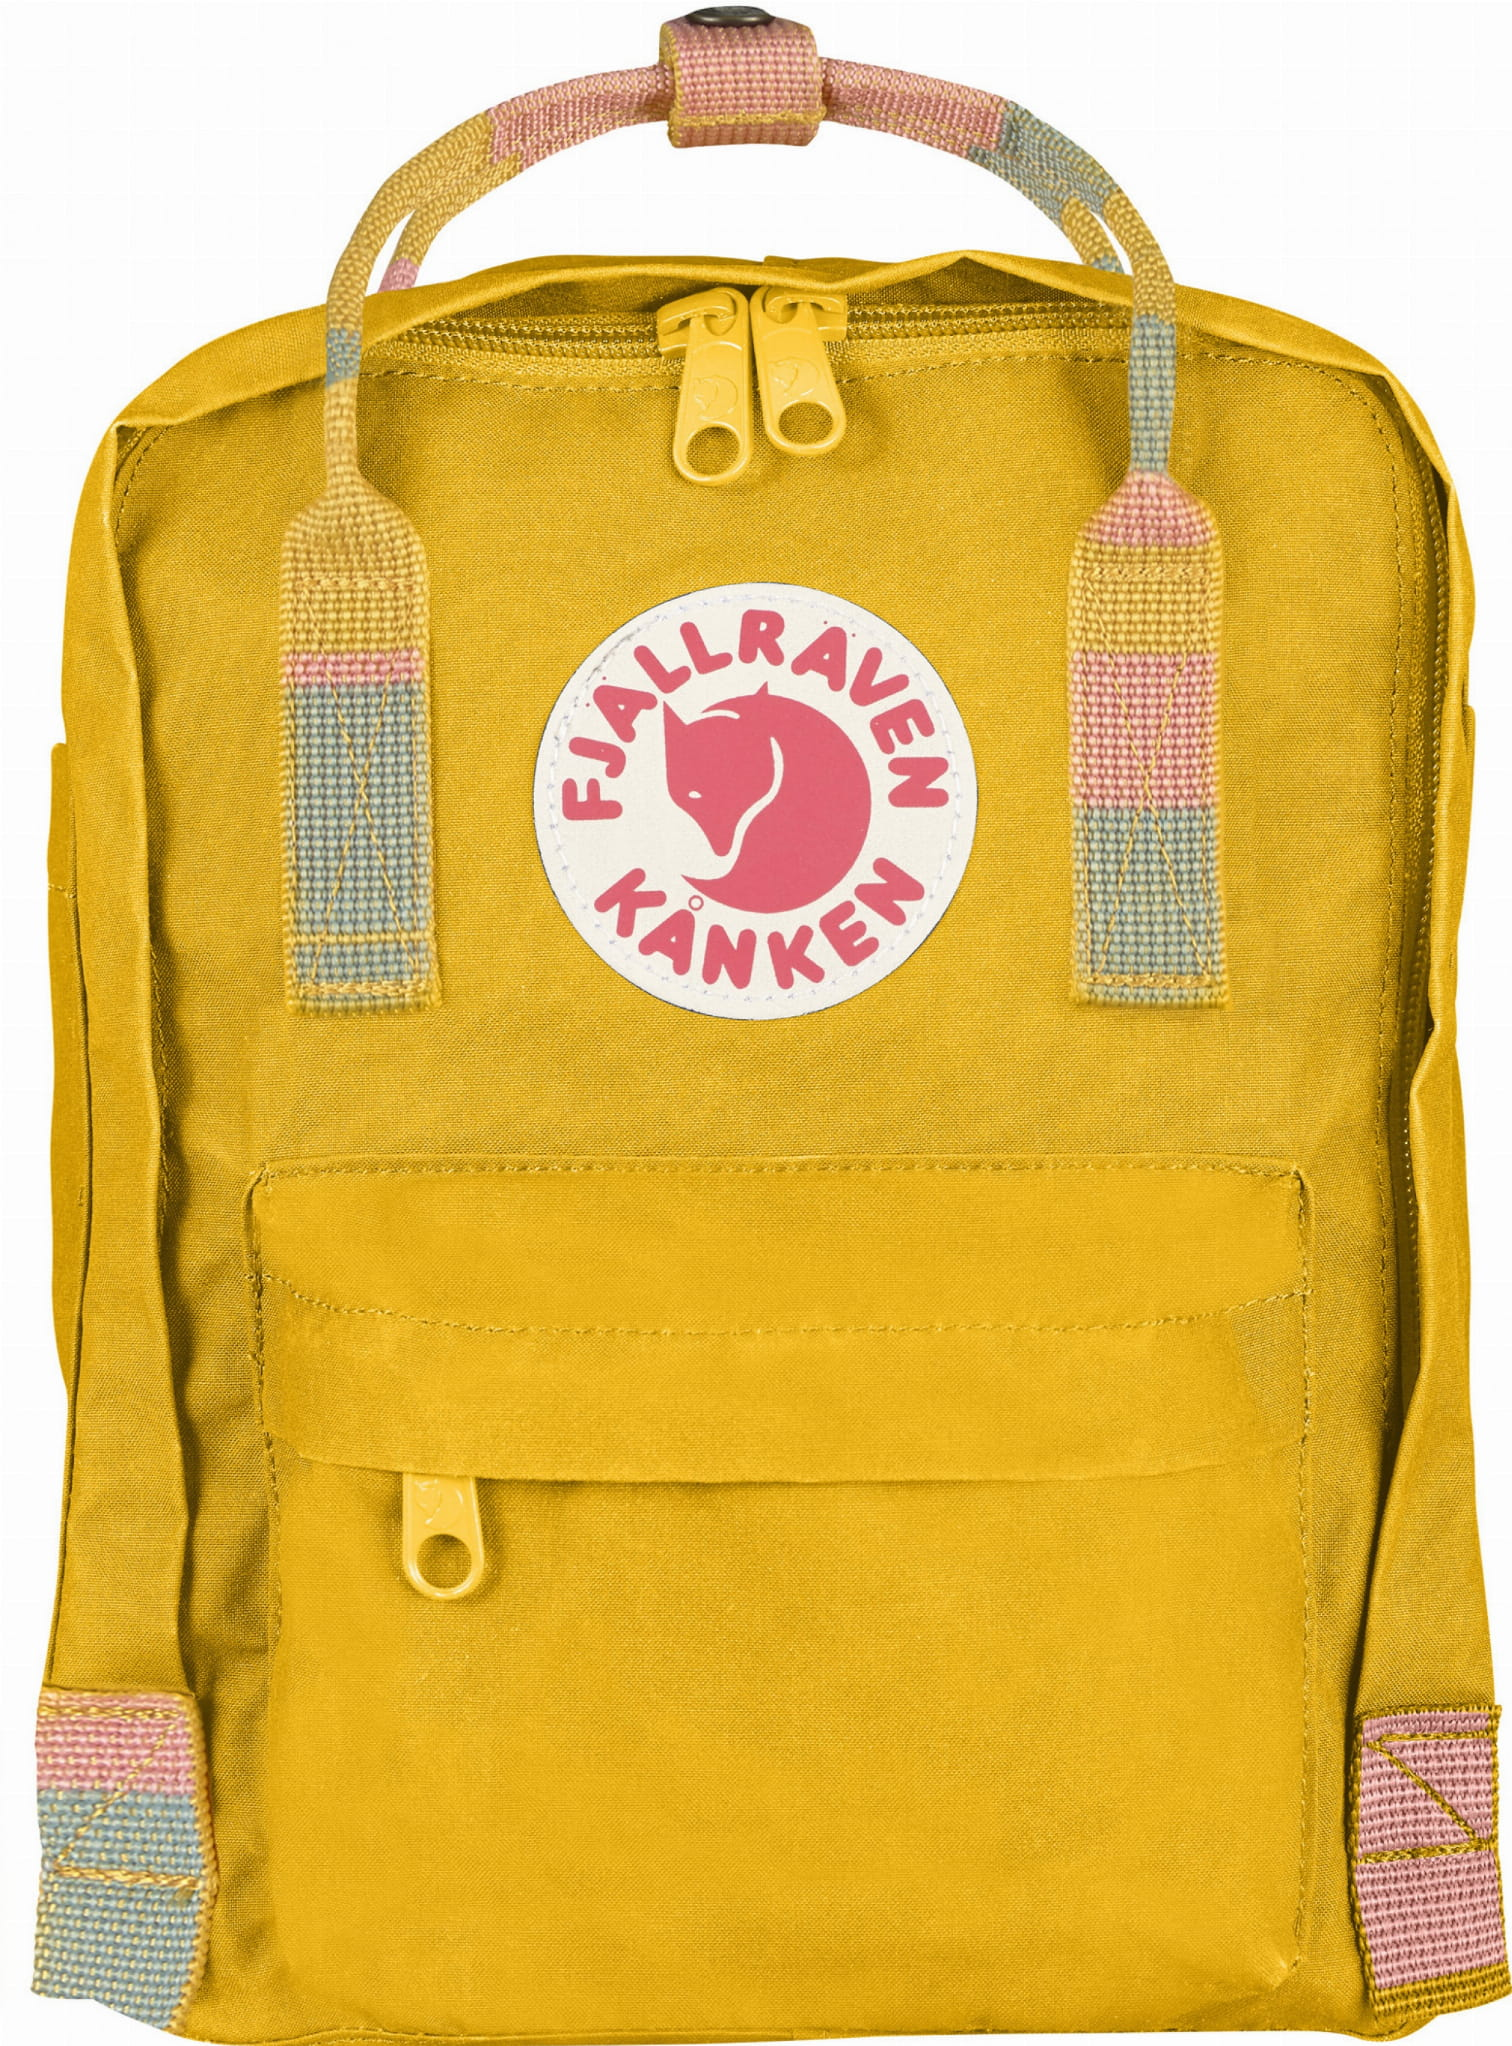 97480ff4eccd0 ... Fjallraven Kanken Mini, kolor: 141-905 - Warm Yellow-Random Blocked.